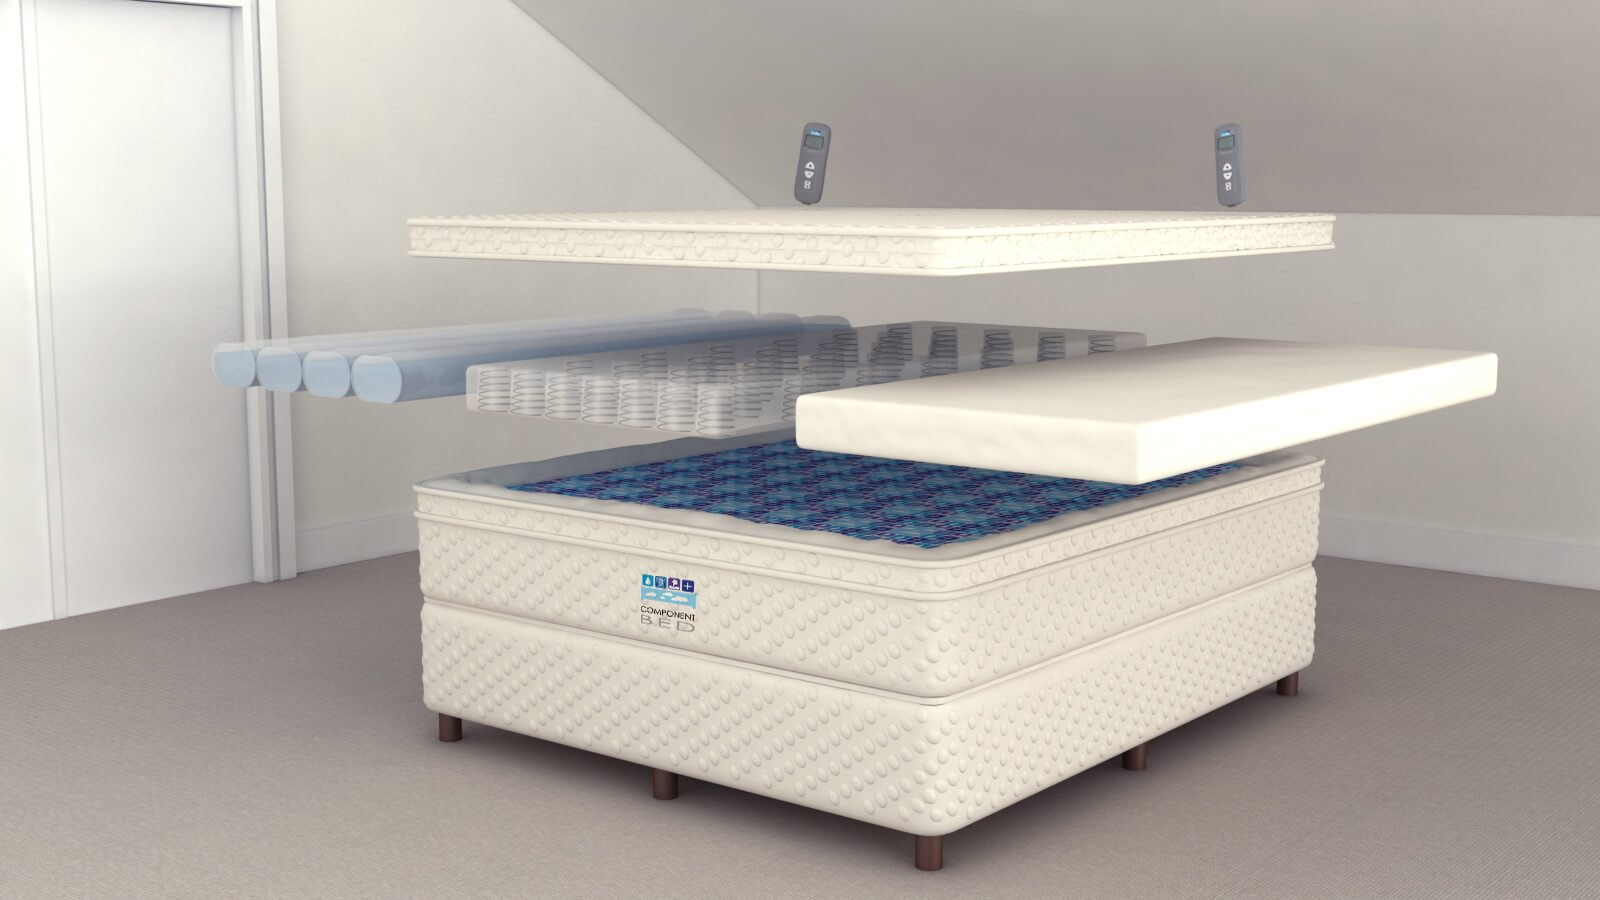 Cheap twin mattresses englander finale 10inch innerspring mattress enjoy a super soft u0026 Queen mattress cheap